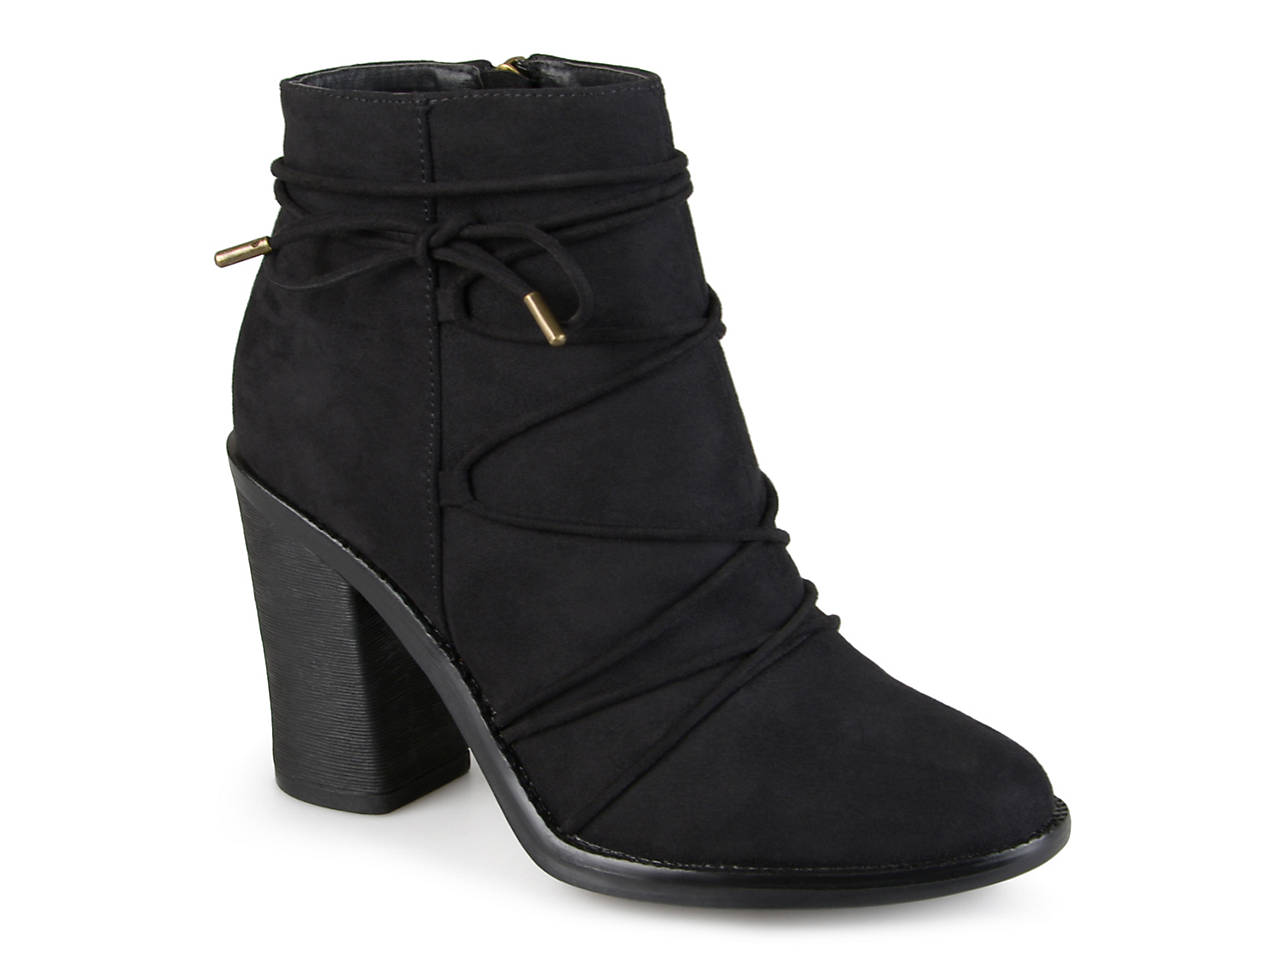 Journee Collection Effie ... Women's Ankle Boots